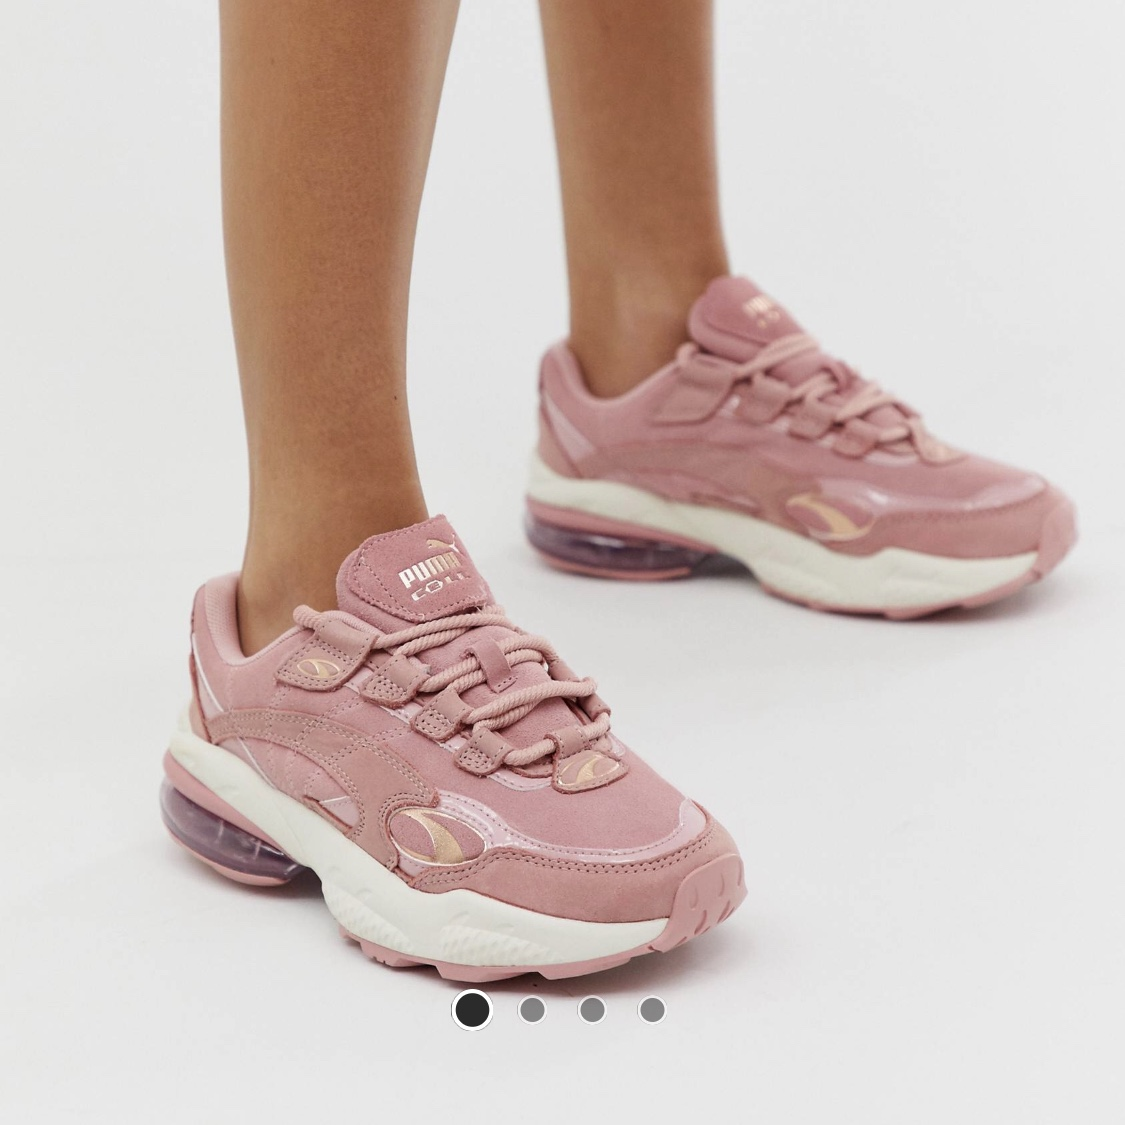 Puma cell venom pink patent pop trainers! Only wore... - Depop